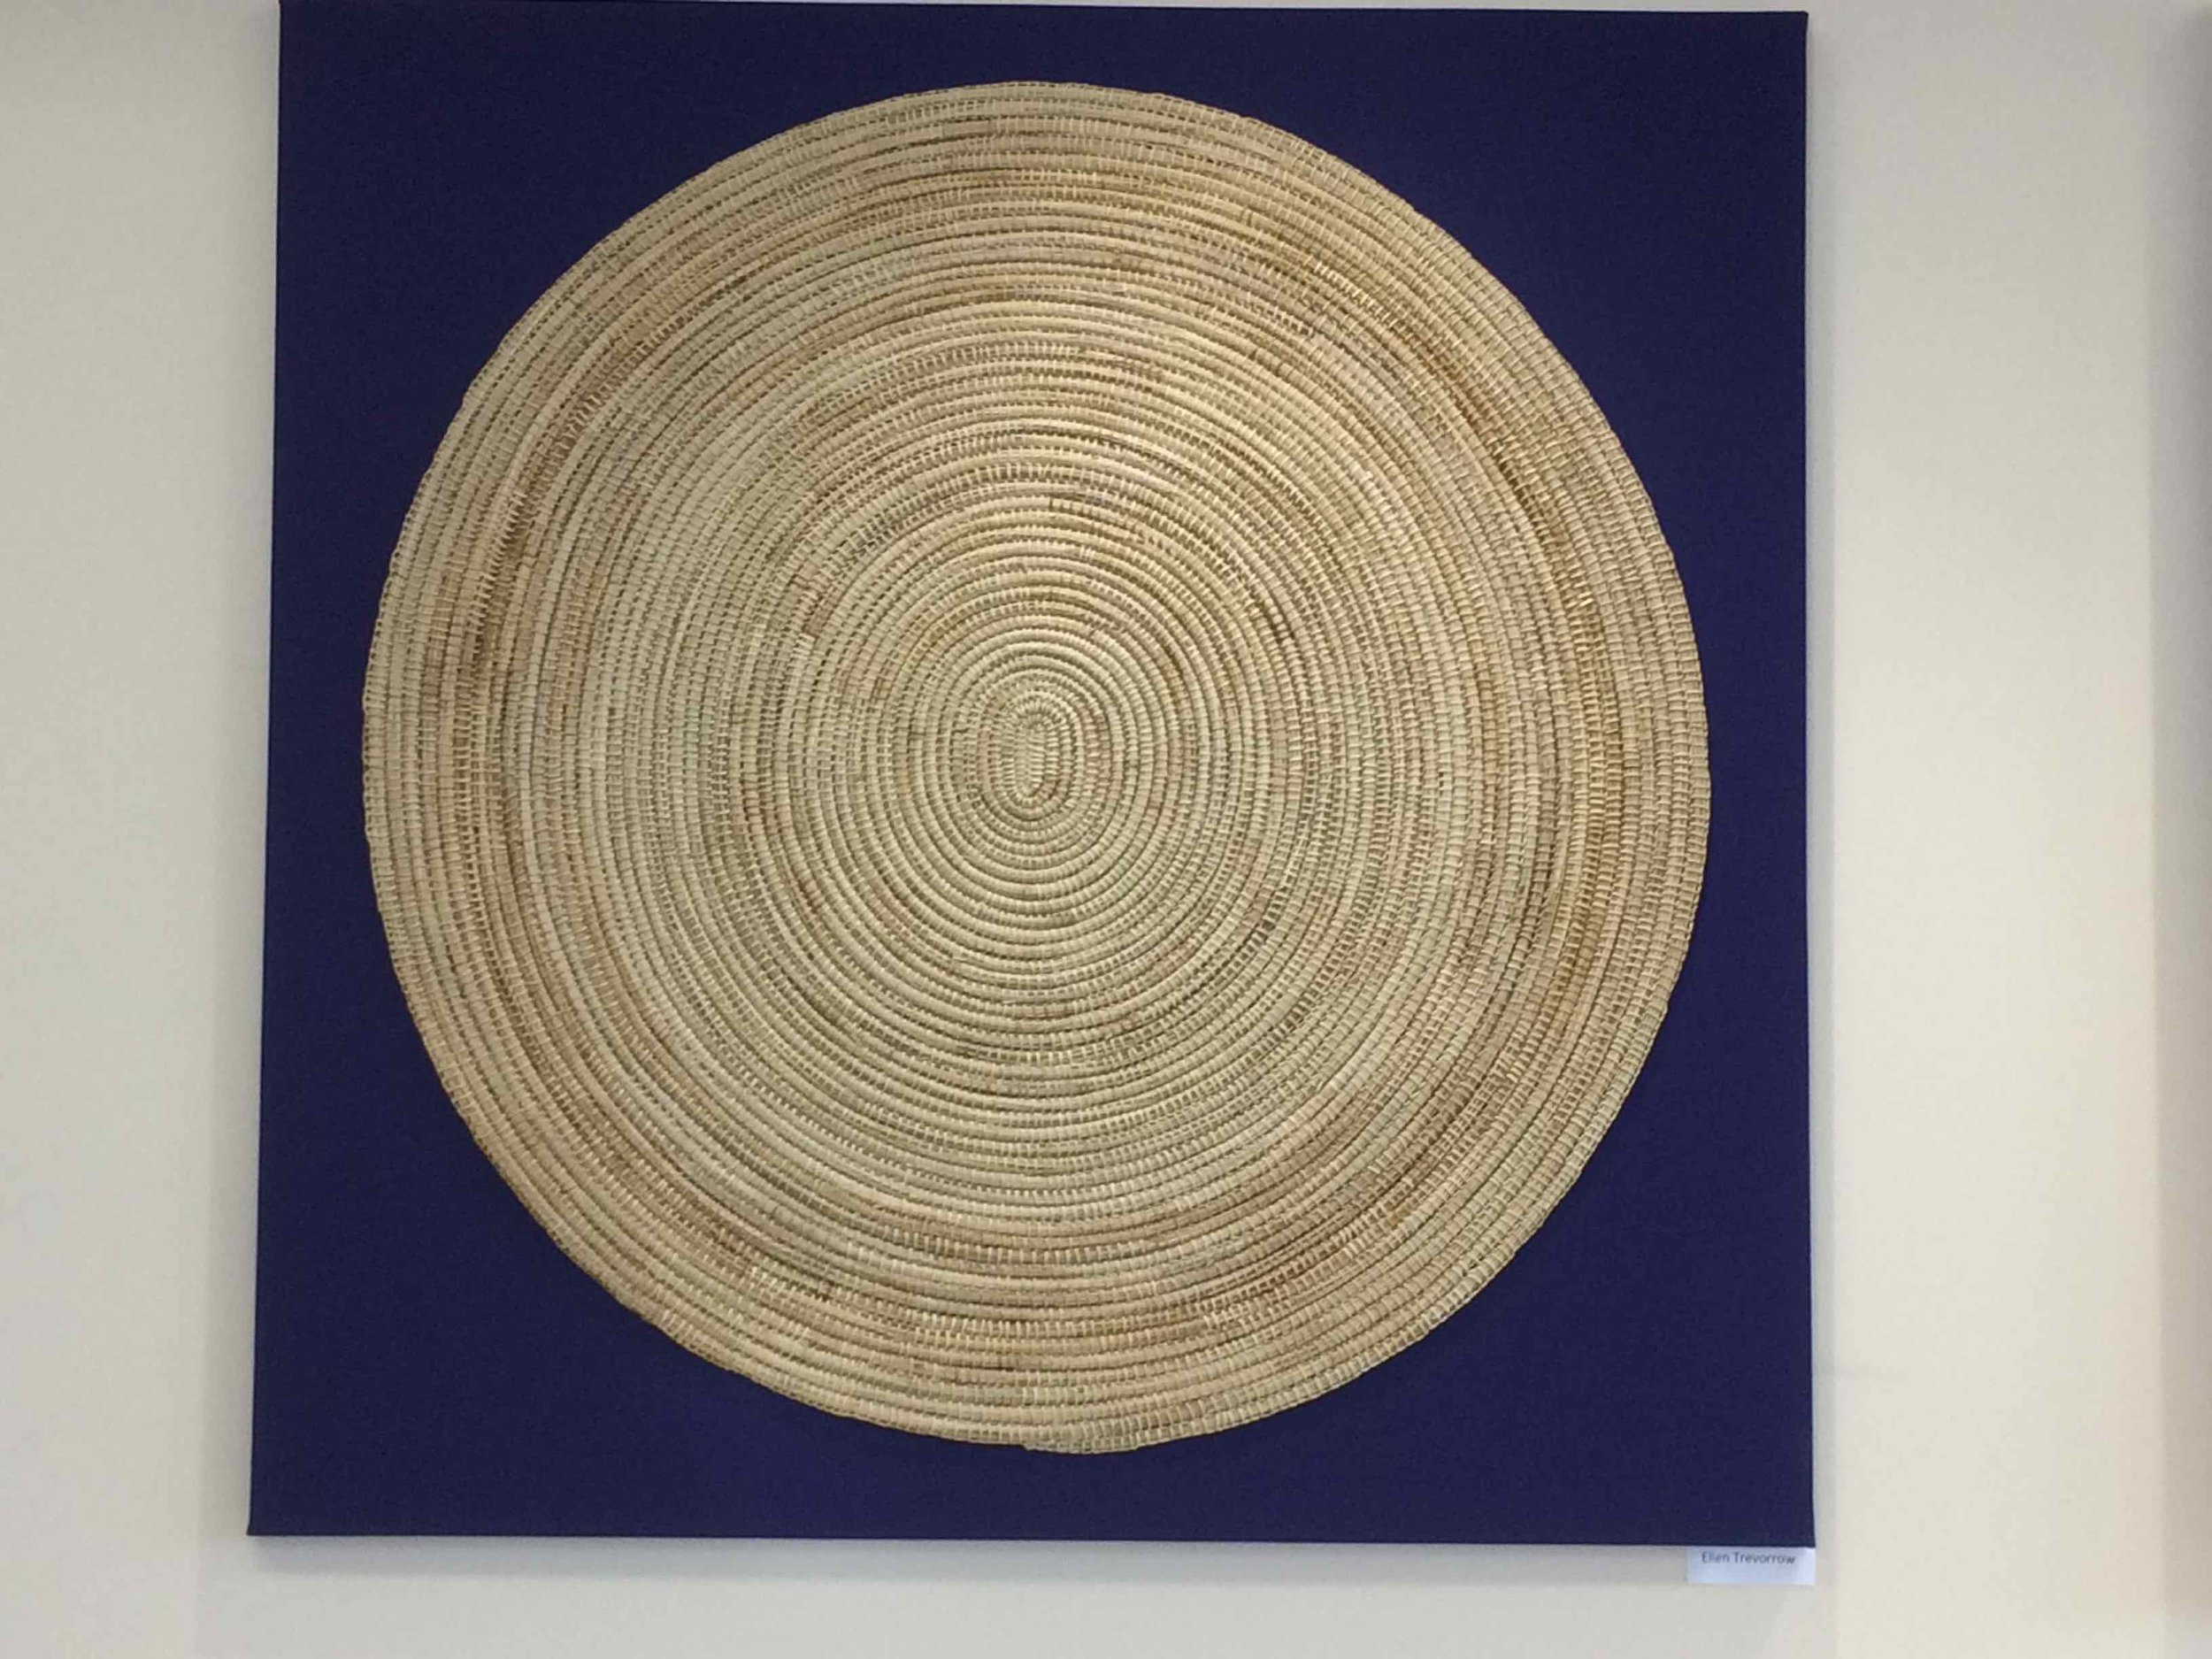 Everything Is Connected, 2017, Nagrrindjeri woven mat, by Ellen Trevorrow. Photo Carl Kuddell